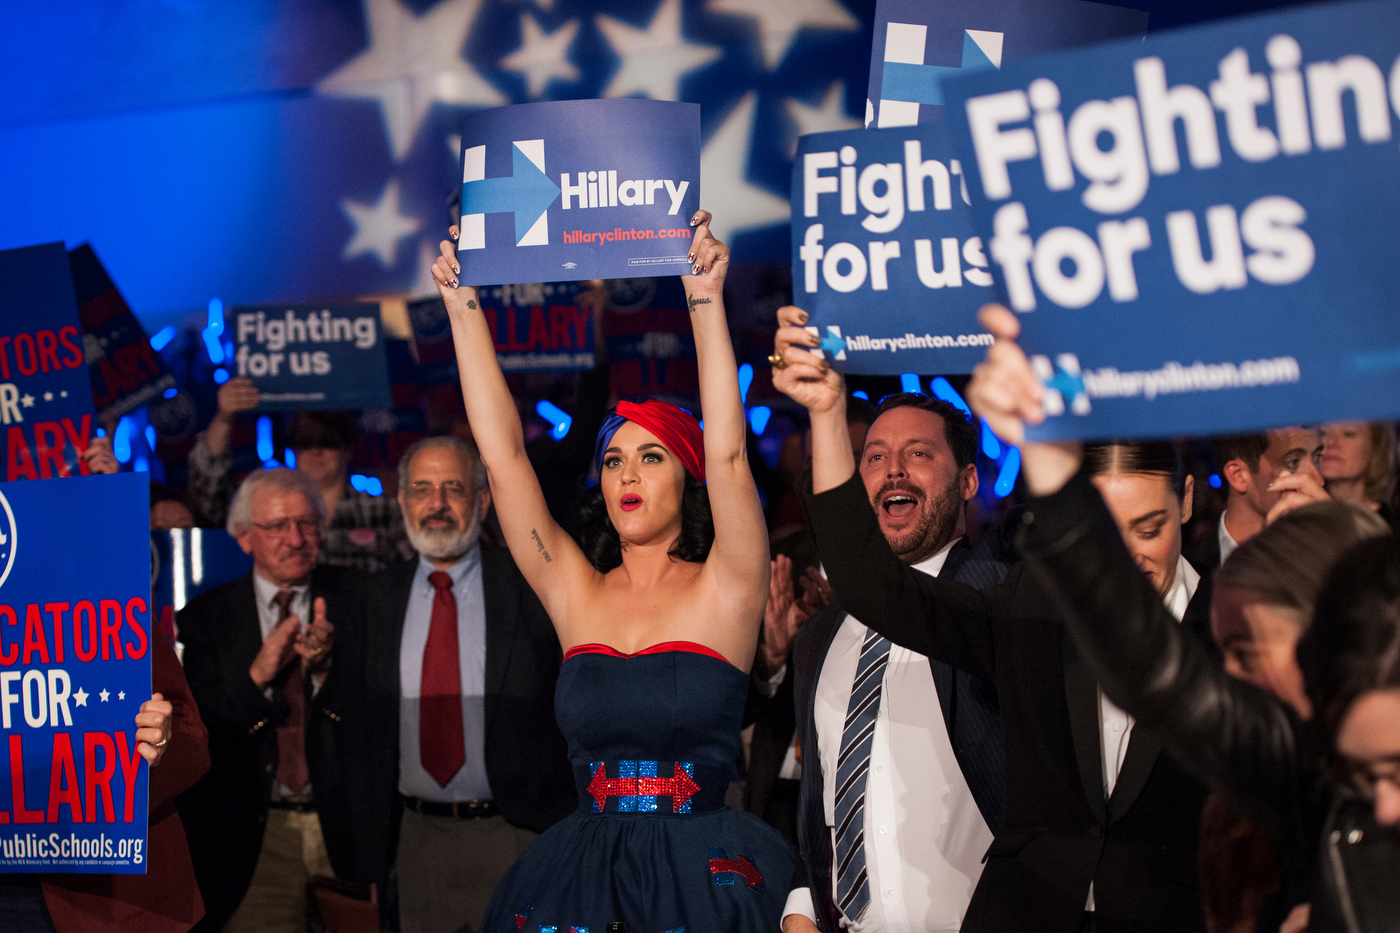 Katy Perry cheers for Democratic Presidential candidate Hillary Clinton at the Jefferson-Jackson Dinner in Des Moines, Iowa. Perry performed earlier in the day at Hillary Clinton's rally just a few blocks away.